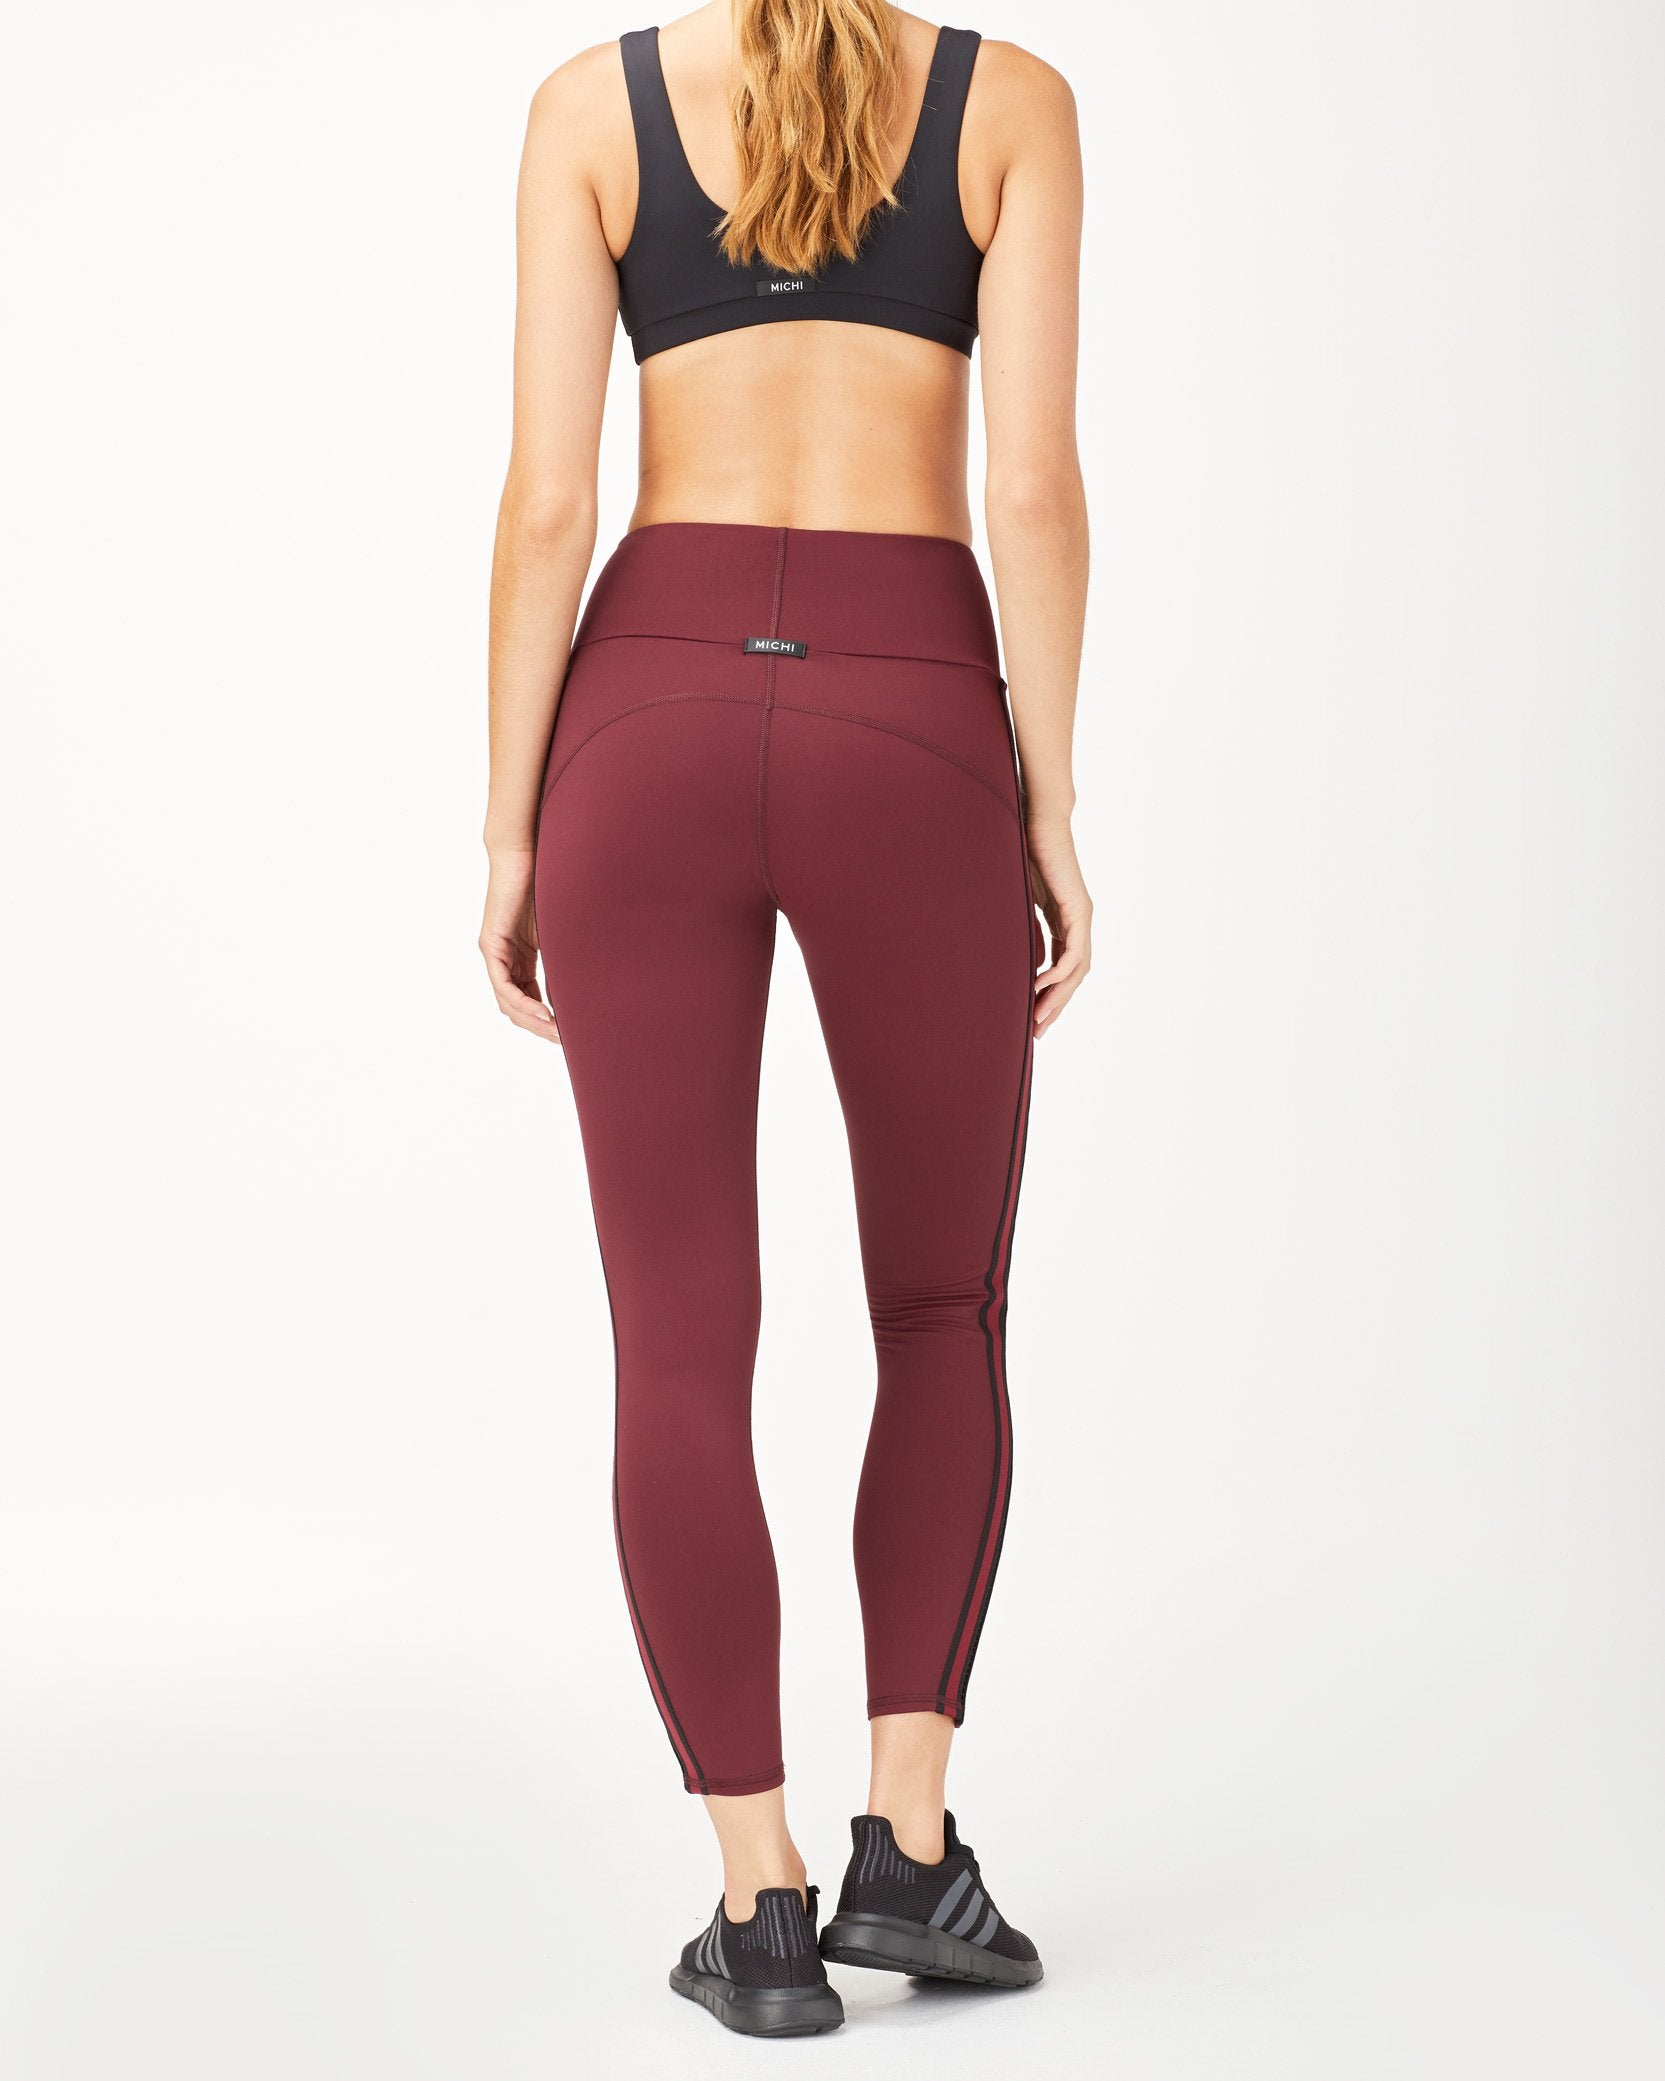 le-mans-high-waisted-legging-wine